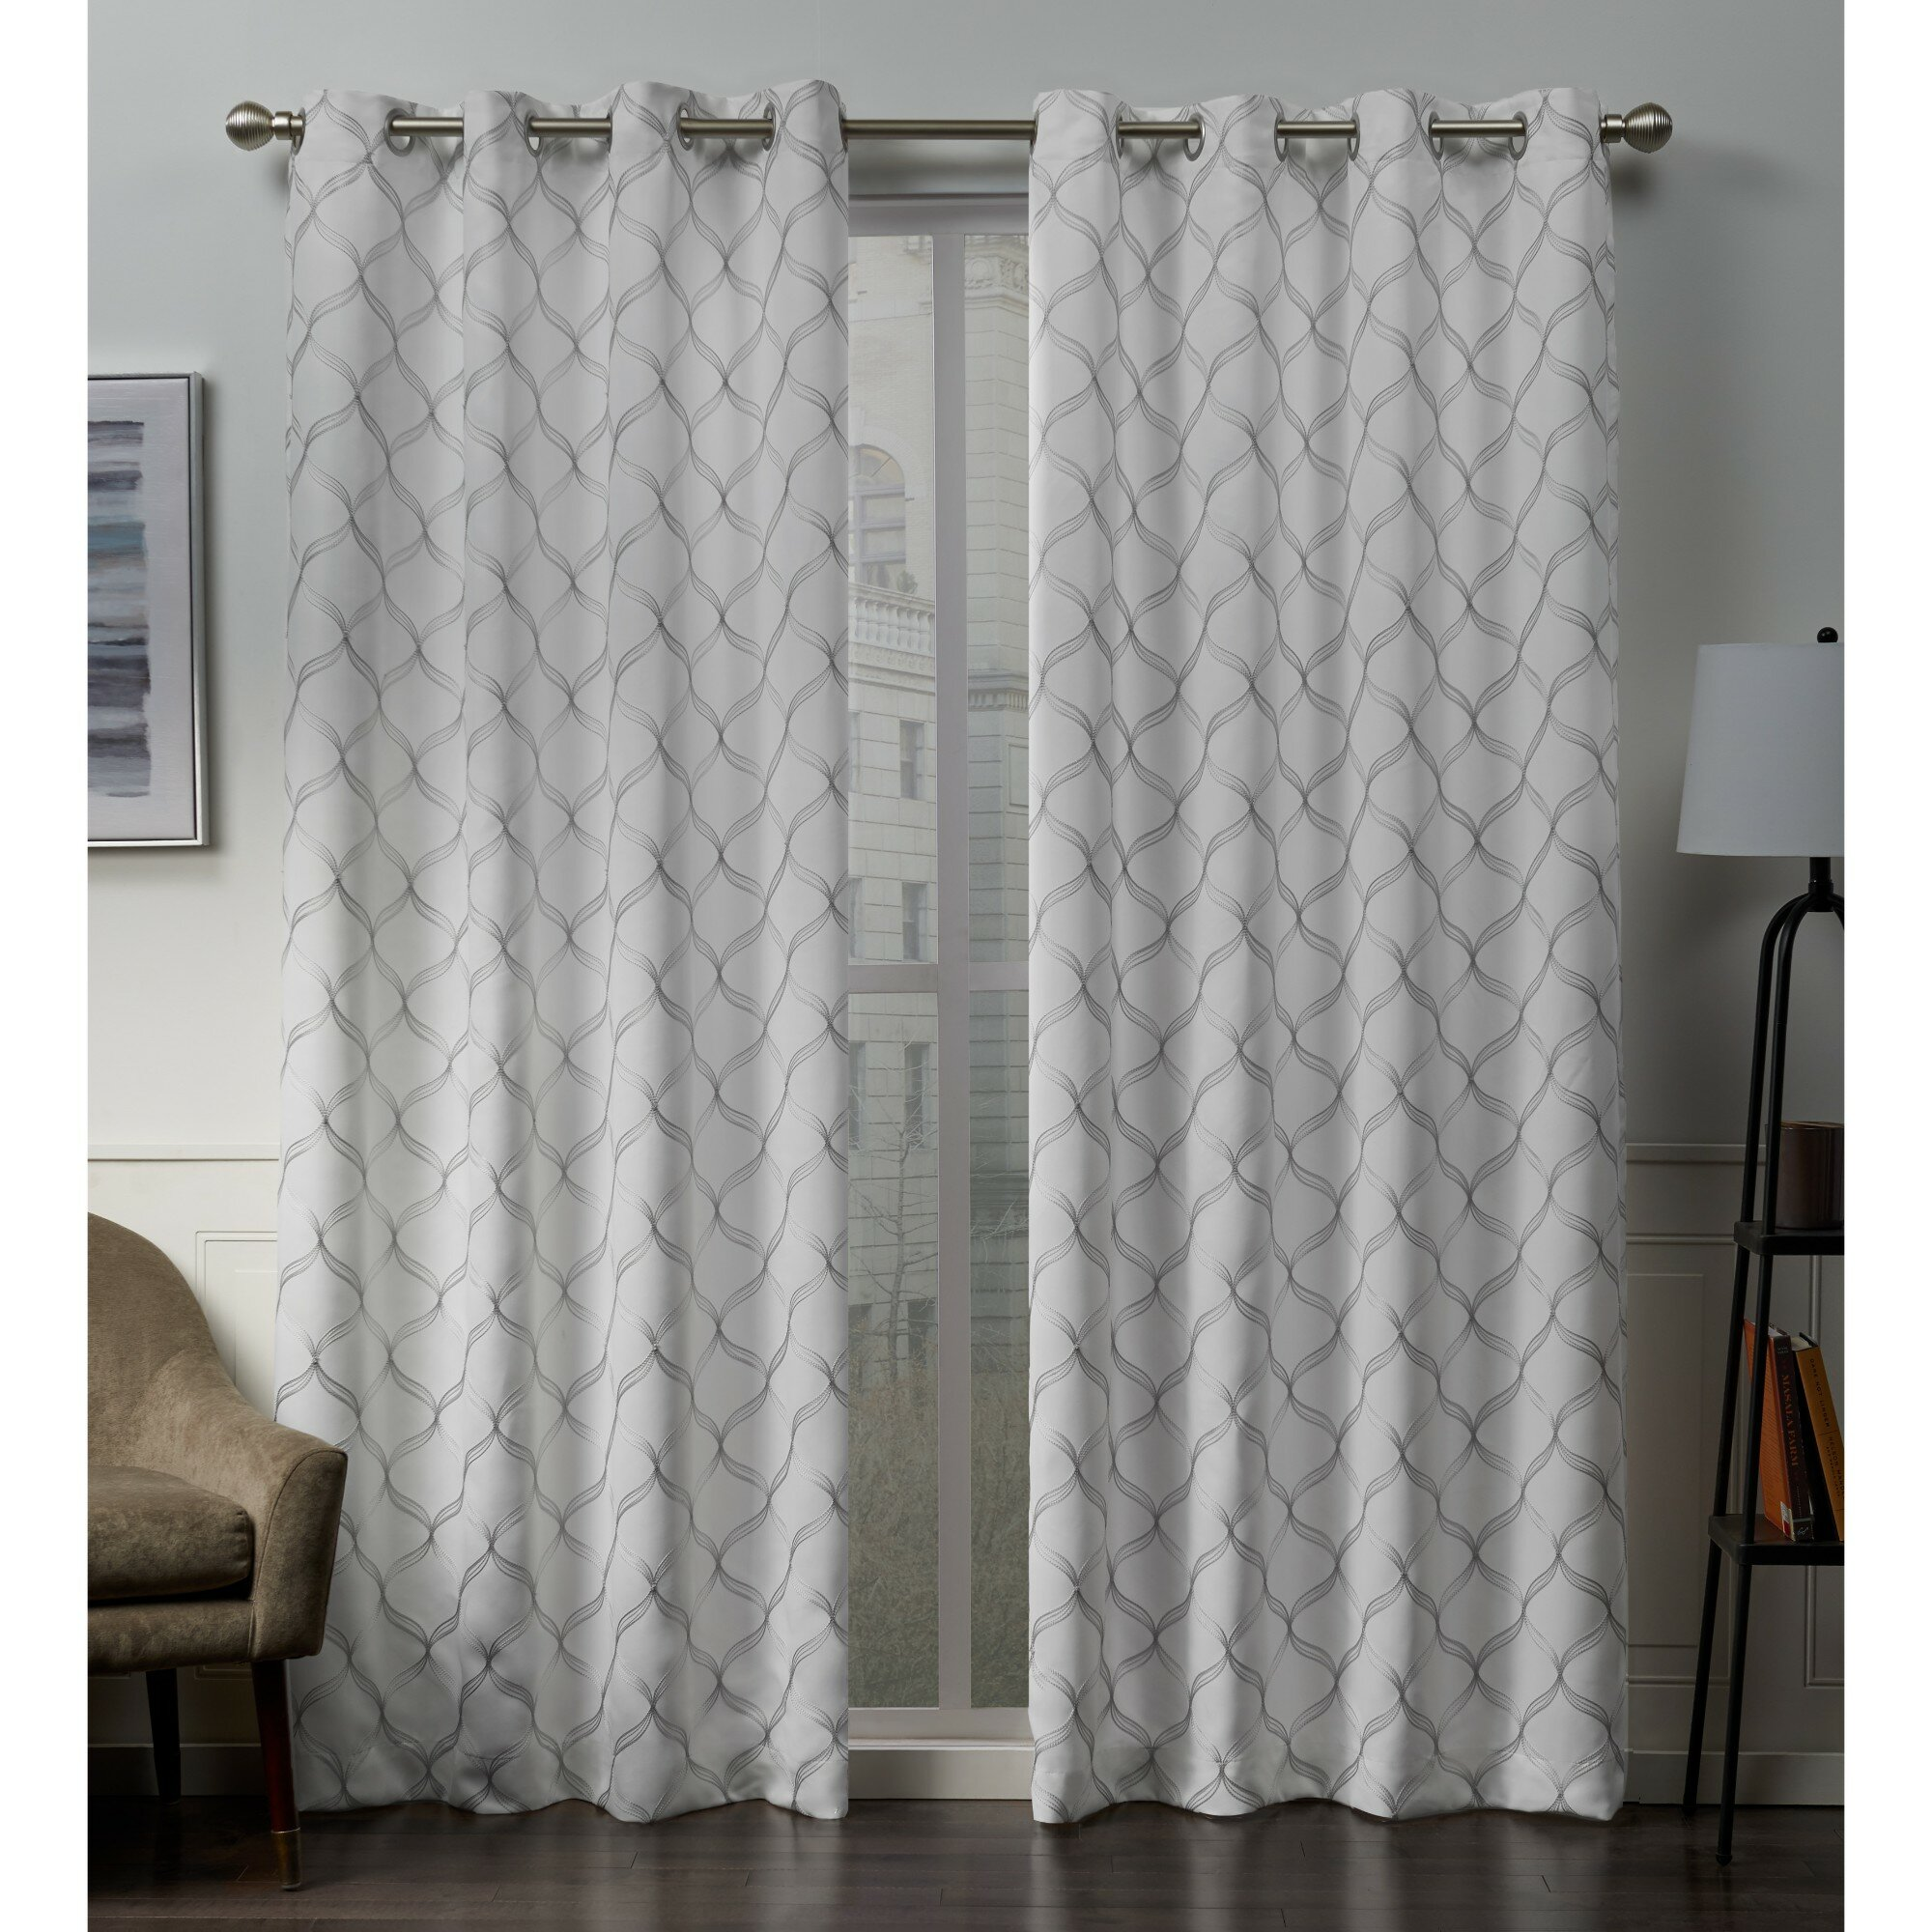 Darby Home Co Belisle Embroidered Geometric Blackout Thermal Grommet Curtain Panels Reviews Wayfair